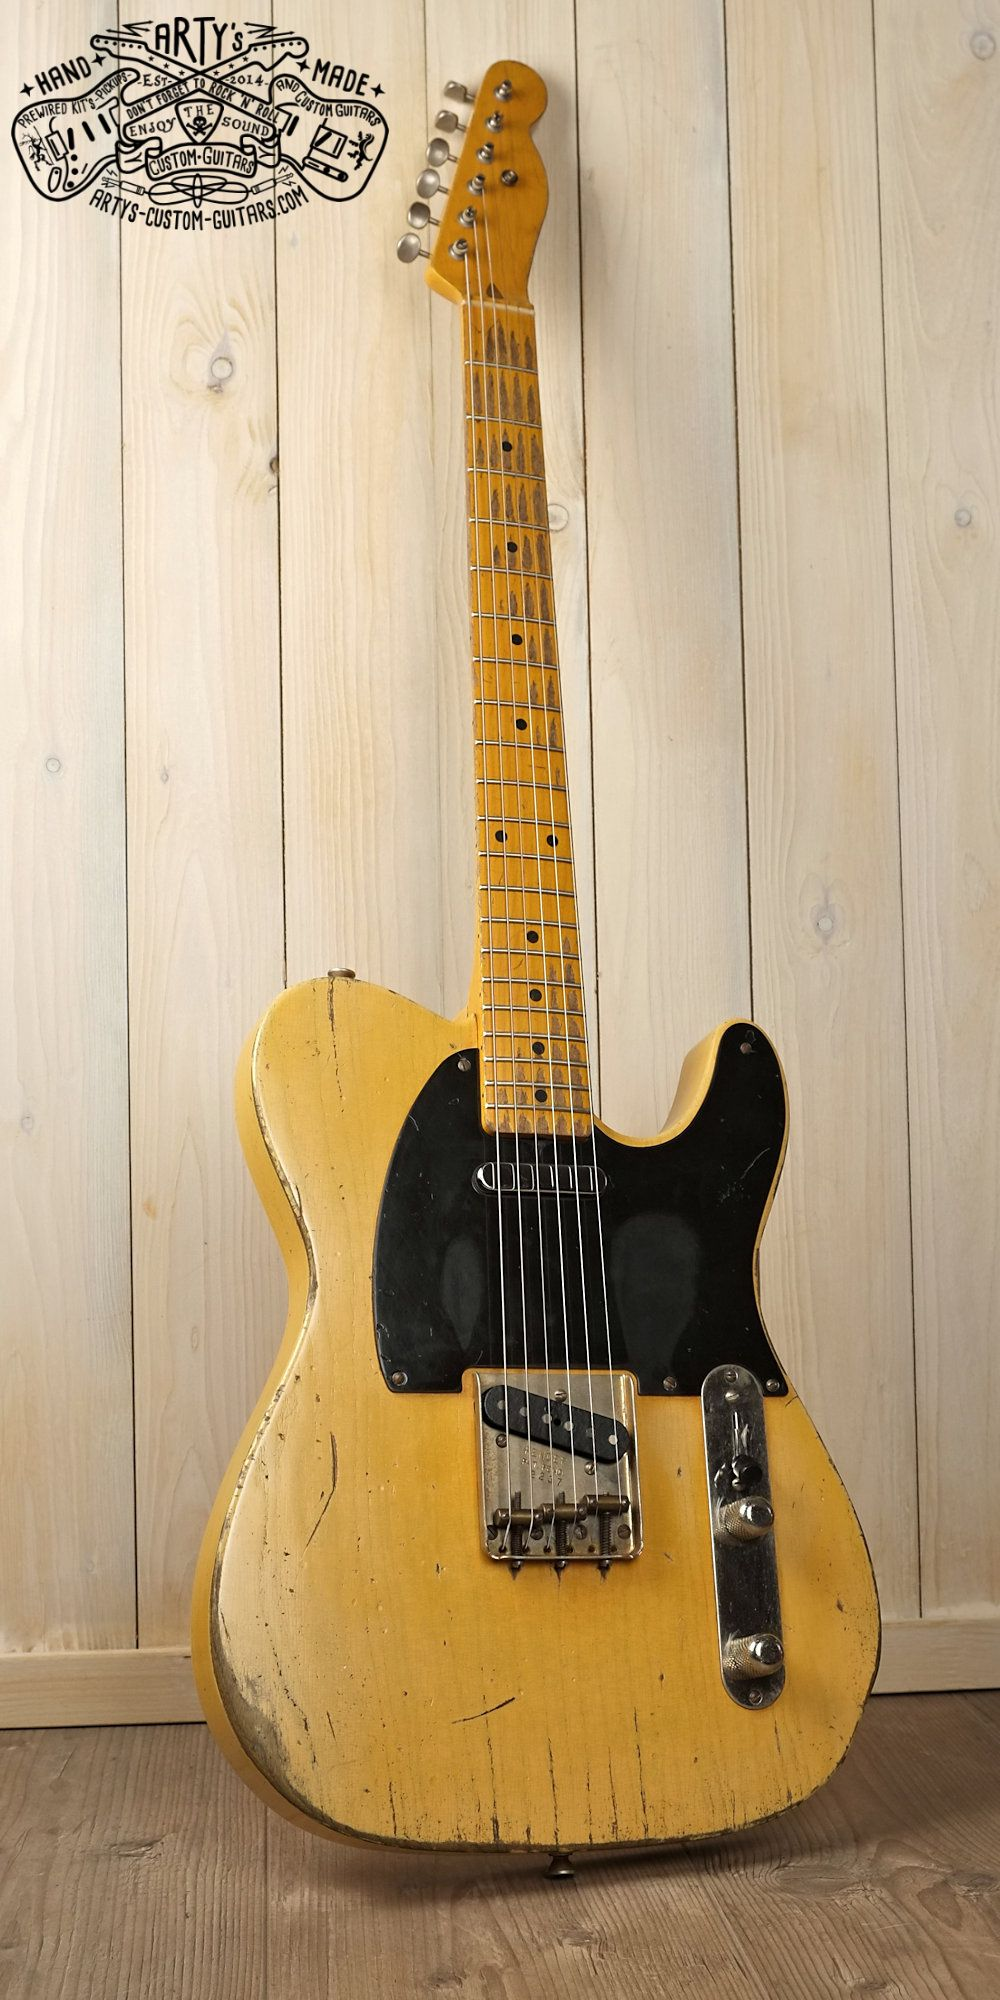 Broadcaster Butterscotch Blonde Telecaster Heavy Relic Tele Maple Epi Vs Gibson Selector Switch Mylespaulcom Neck Swamp Ash Body Bakelite Pickguard Aged Nitro Finish Artys Custom Guitars